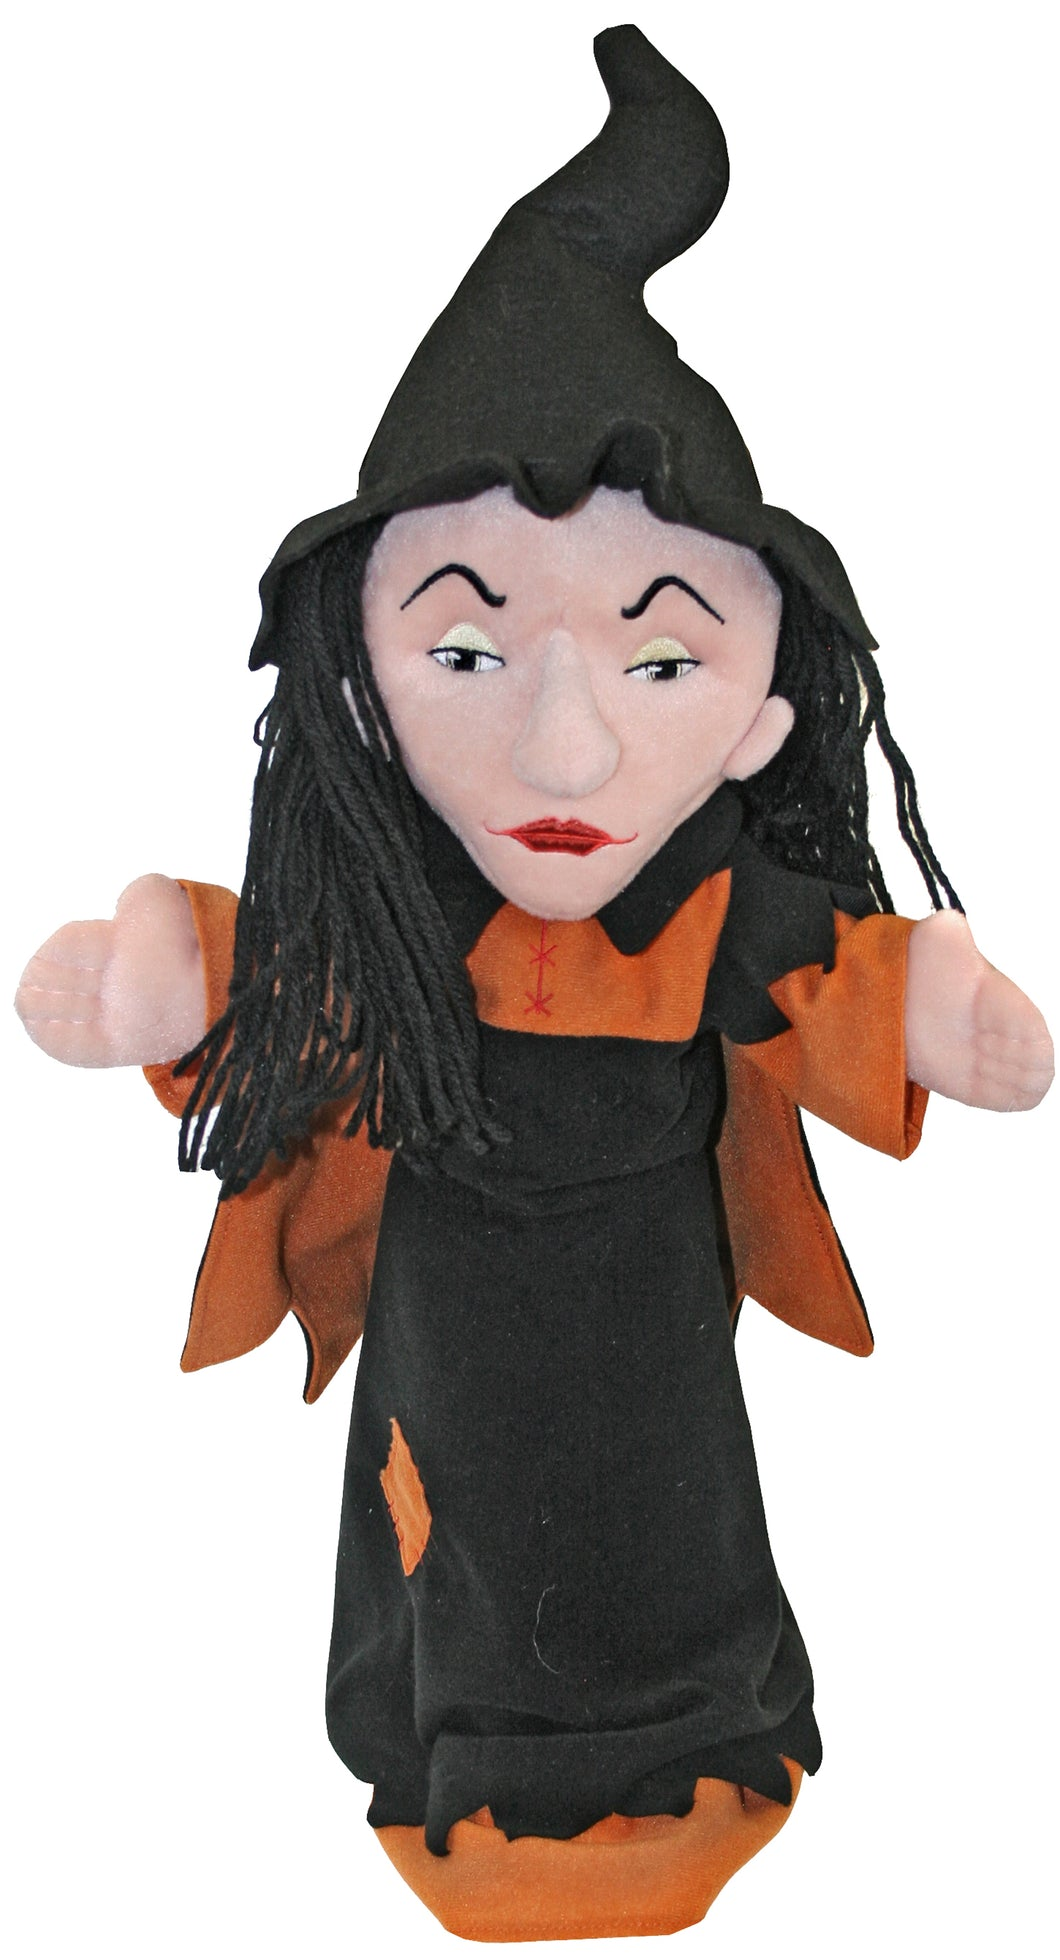 P495-PC008408-marionnette-Sorcière-The-Puppet-Company-Time-For-Story-Puppets